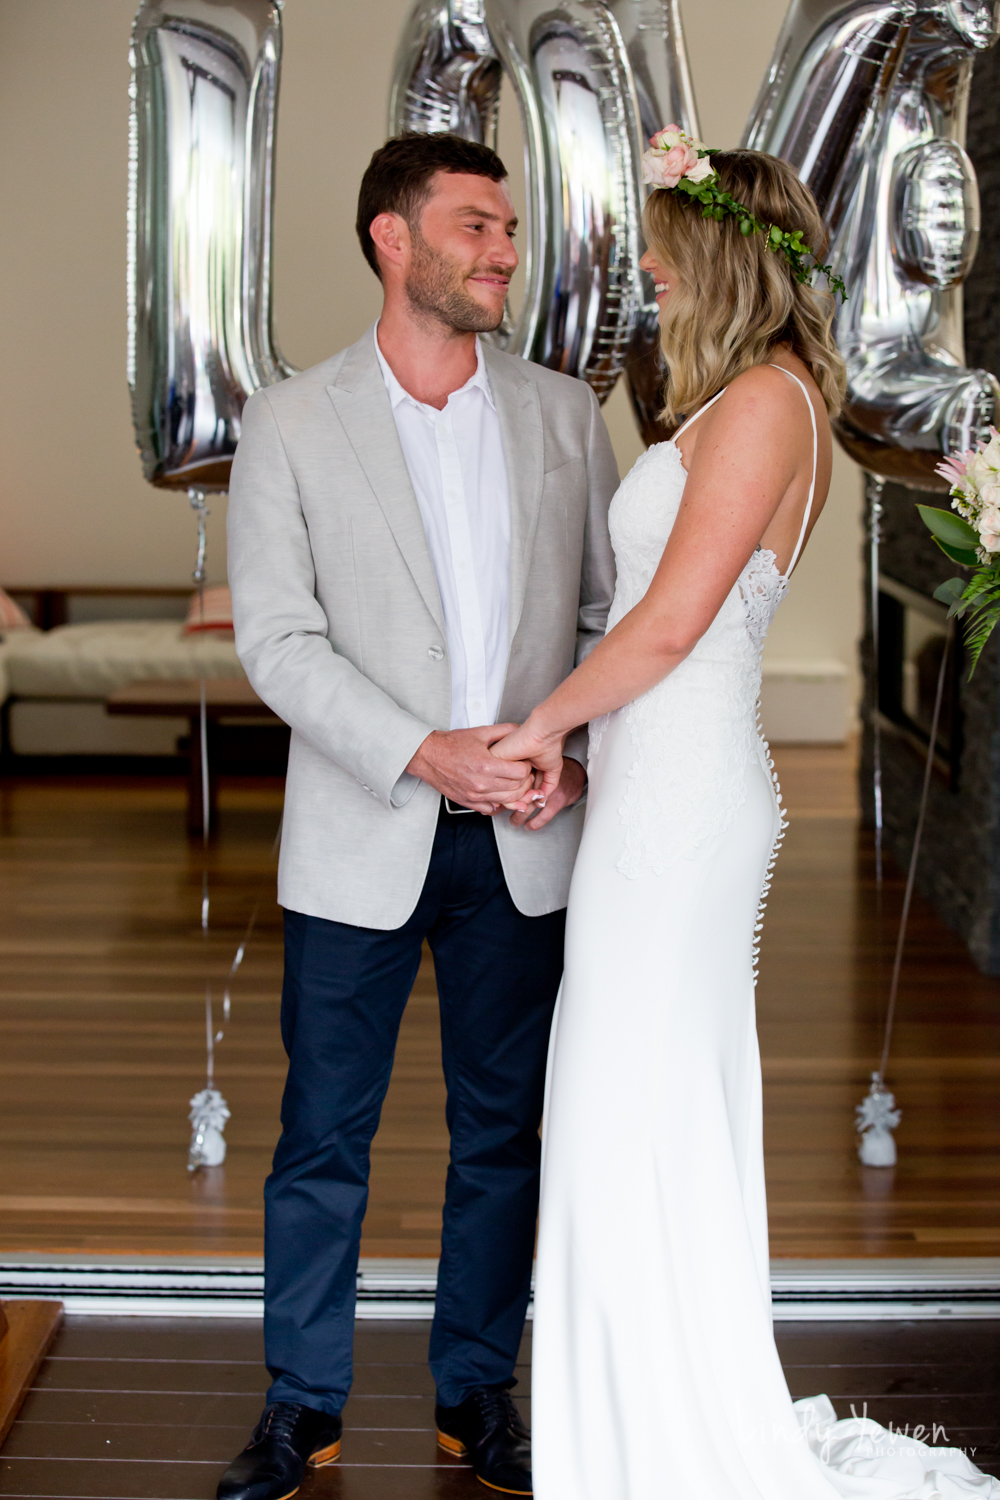 Noosa-Wedding-Photographer-Jess-Tyson 138.jpg